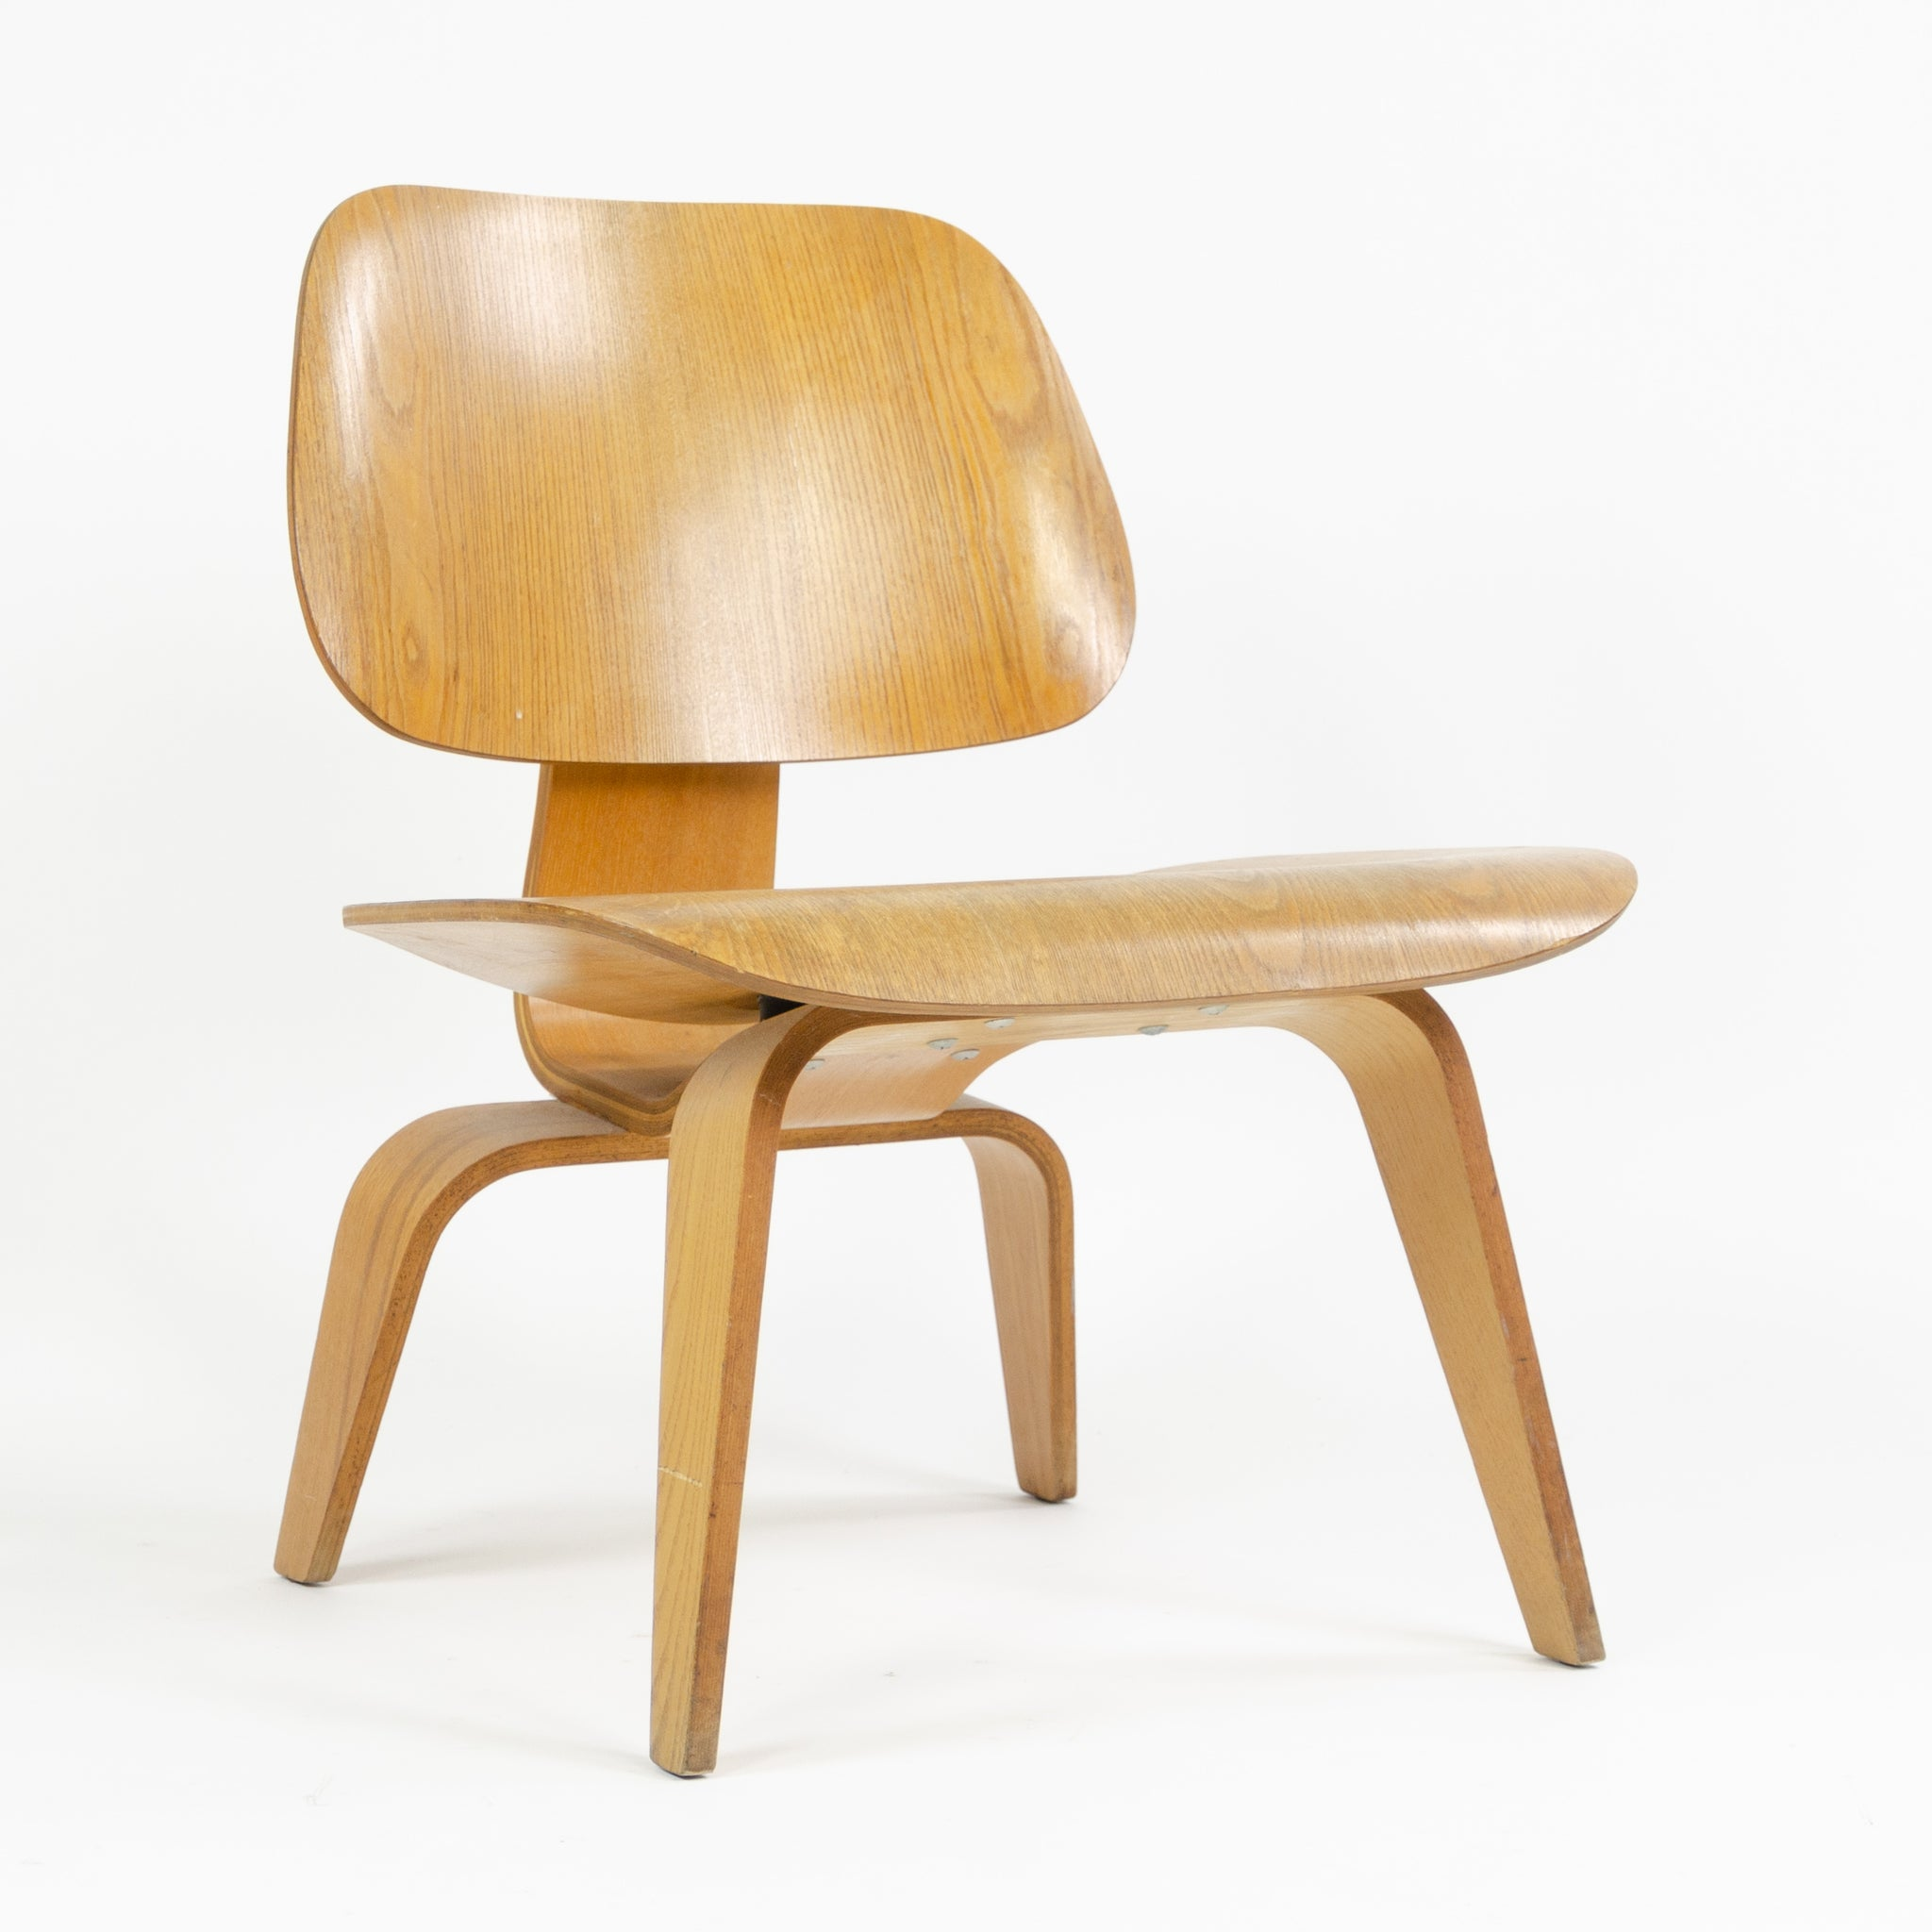 Eames Herman Miller 1951 LCW Lounge Chair Wood Evans Calico Ash